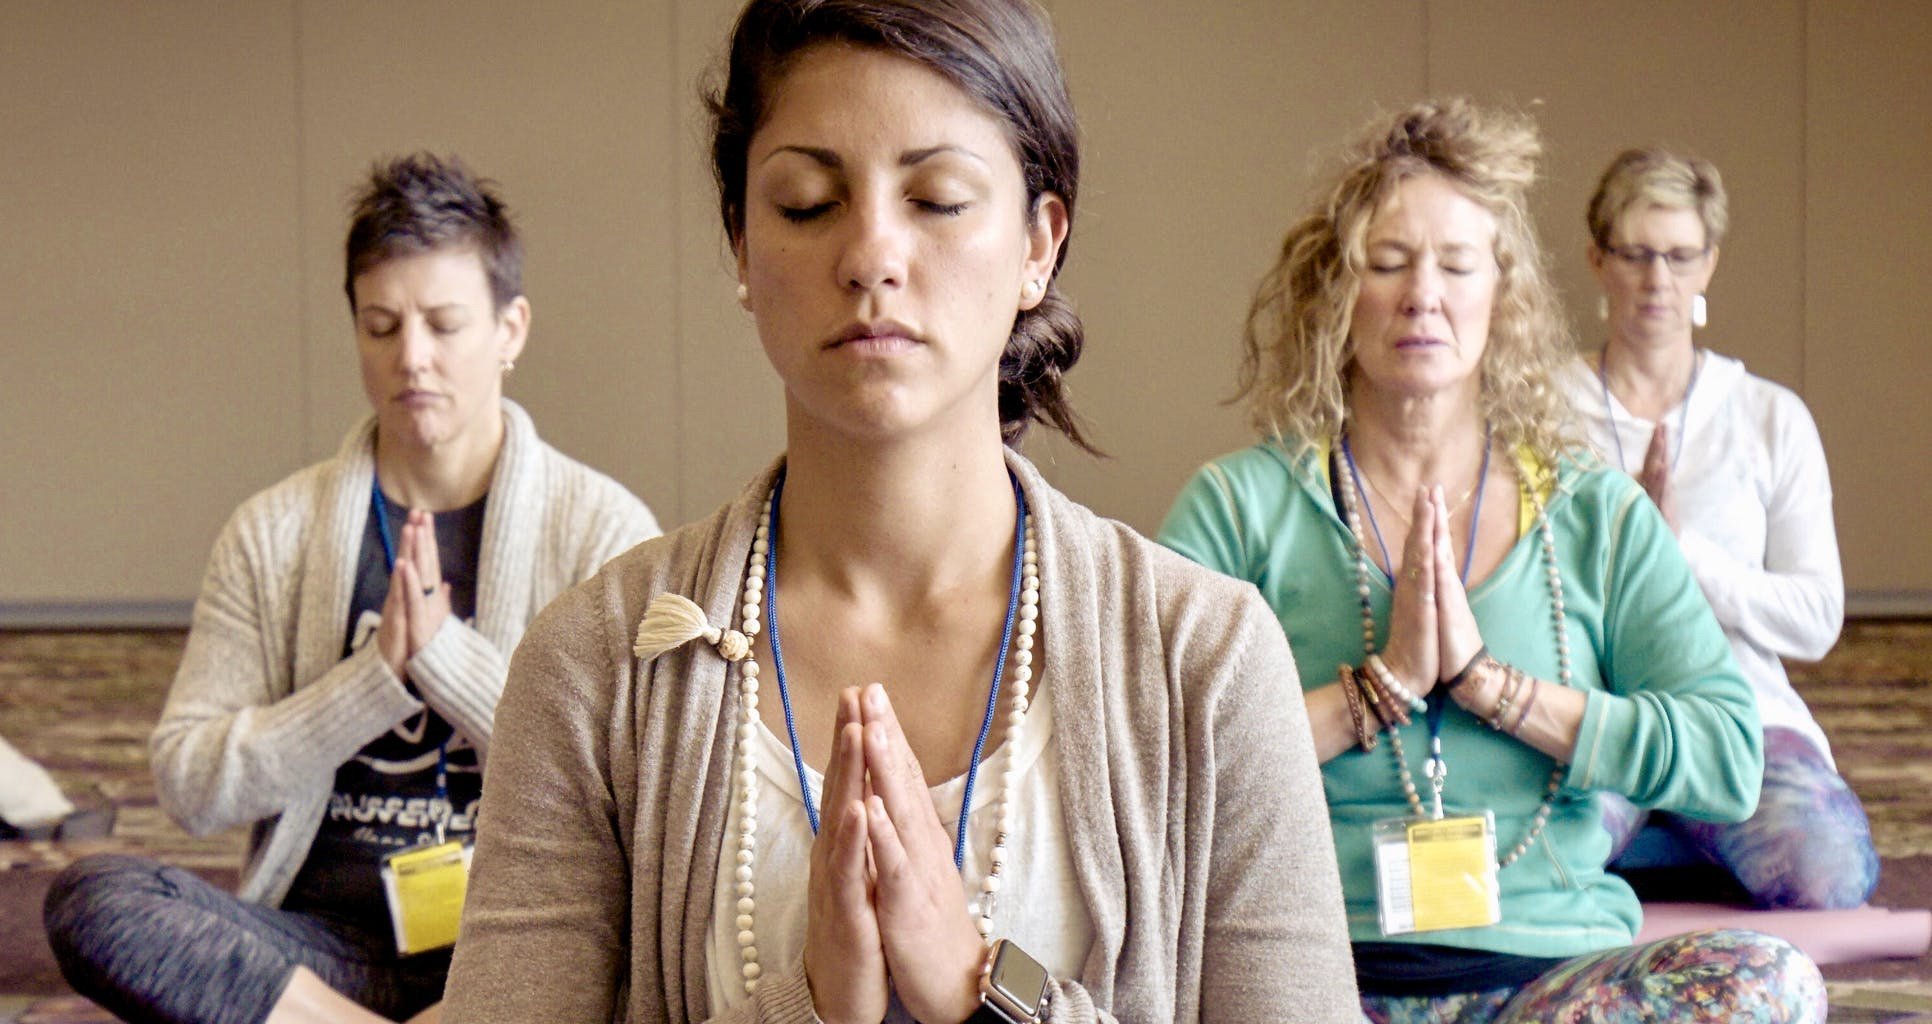 seema.com, seema network, seema newsletter, seema for south asians, seema for South Asian women, seema for South Asian women leaders, seema columnist, meditation, meditation during the pandemic, Sweta Vikram, Sweta srivastava Vikram, coronavirus trends 2020, healing during the pandemic, meditation for uncertain times